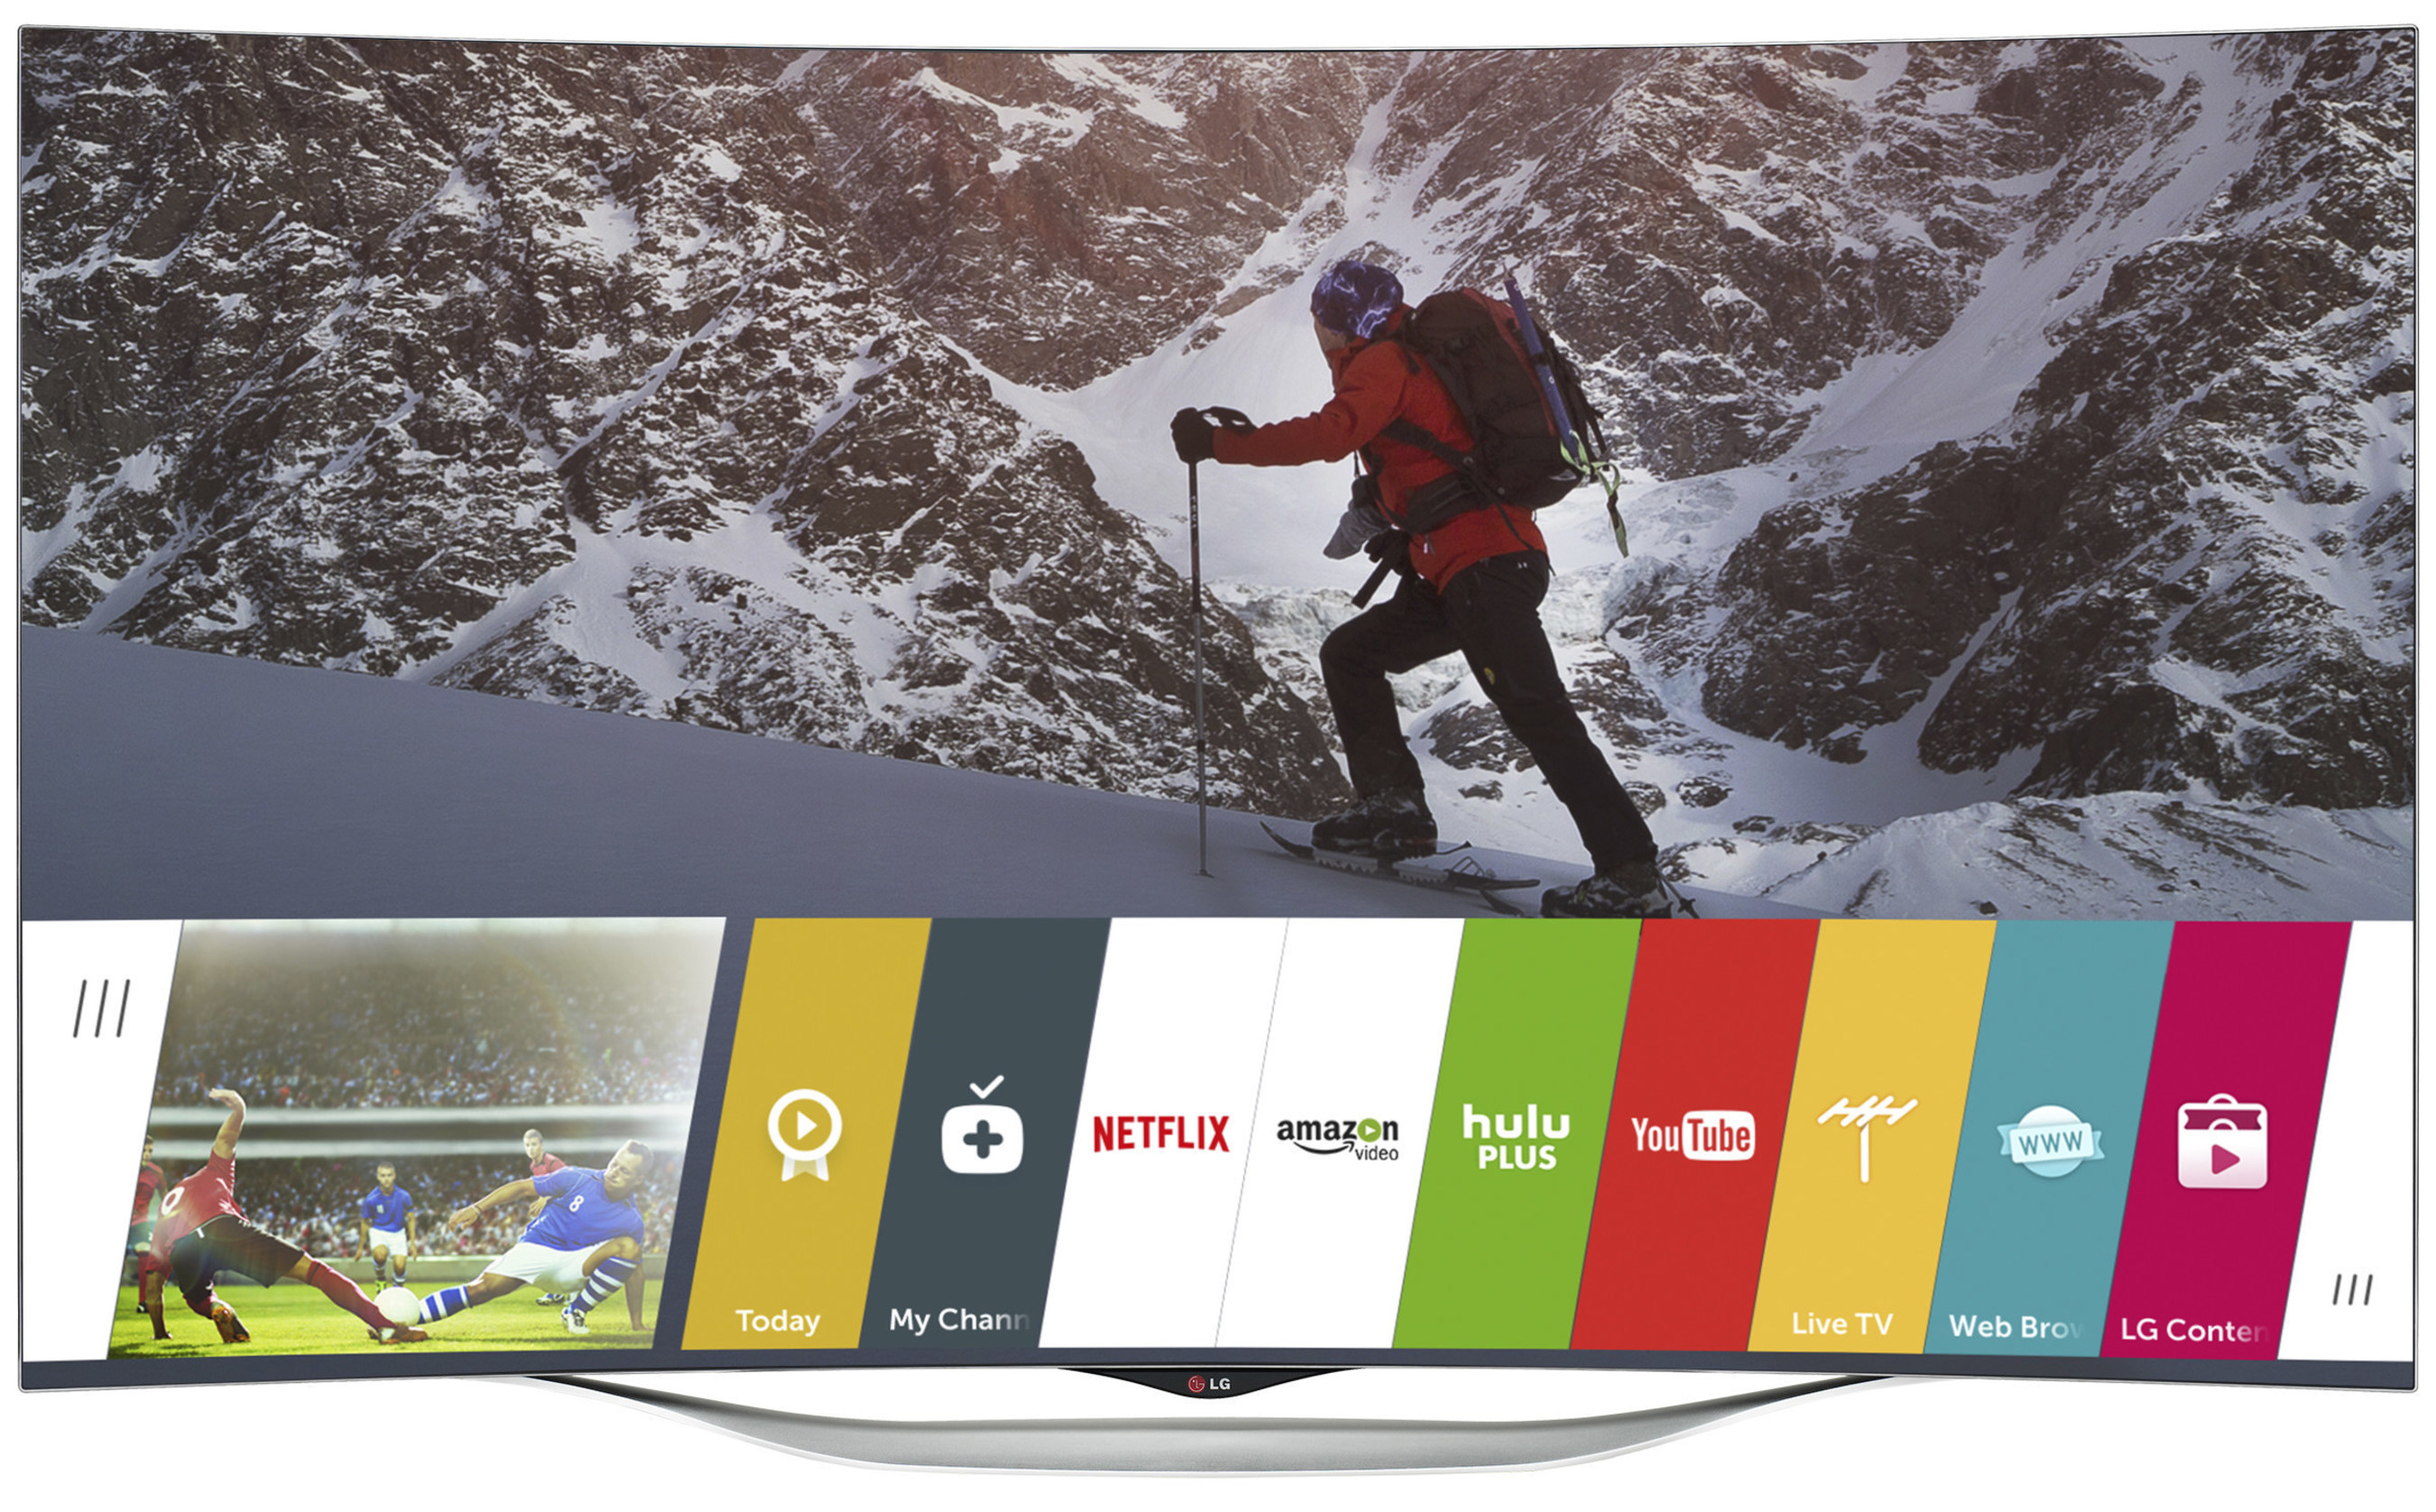 LG Electronics USA today announced a no-cost firmware update for its webOS Smart TV platform on 2014 smart TV models, including the EC9300 (pictured). A free upgrade o this scale is unprecedented in the smart TV industry.